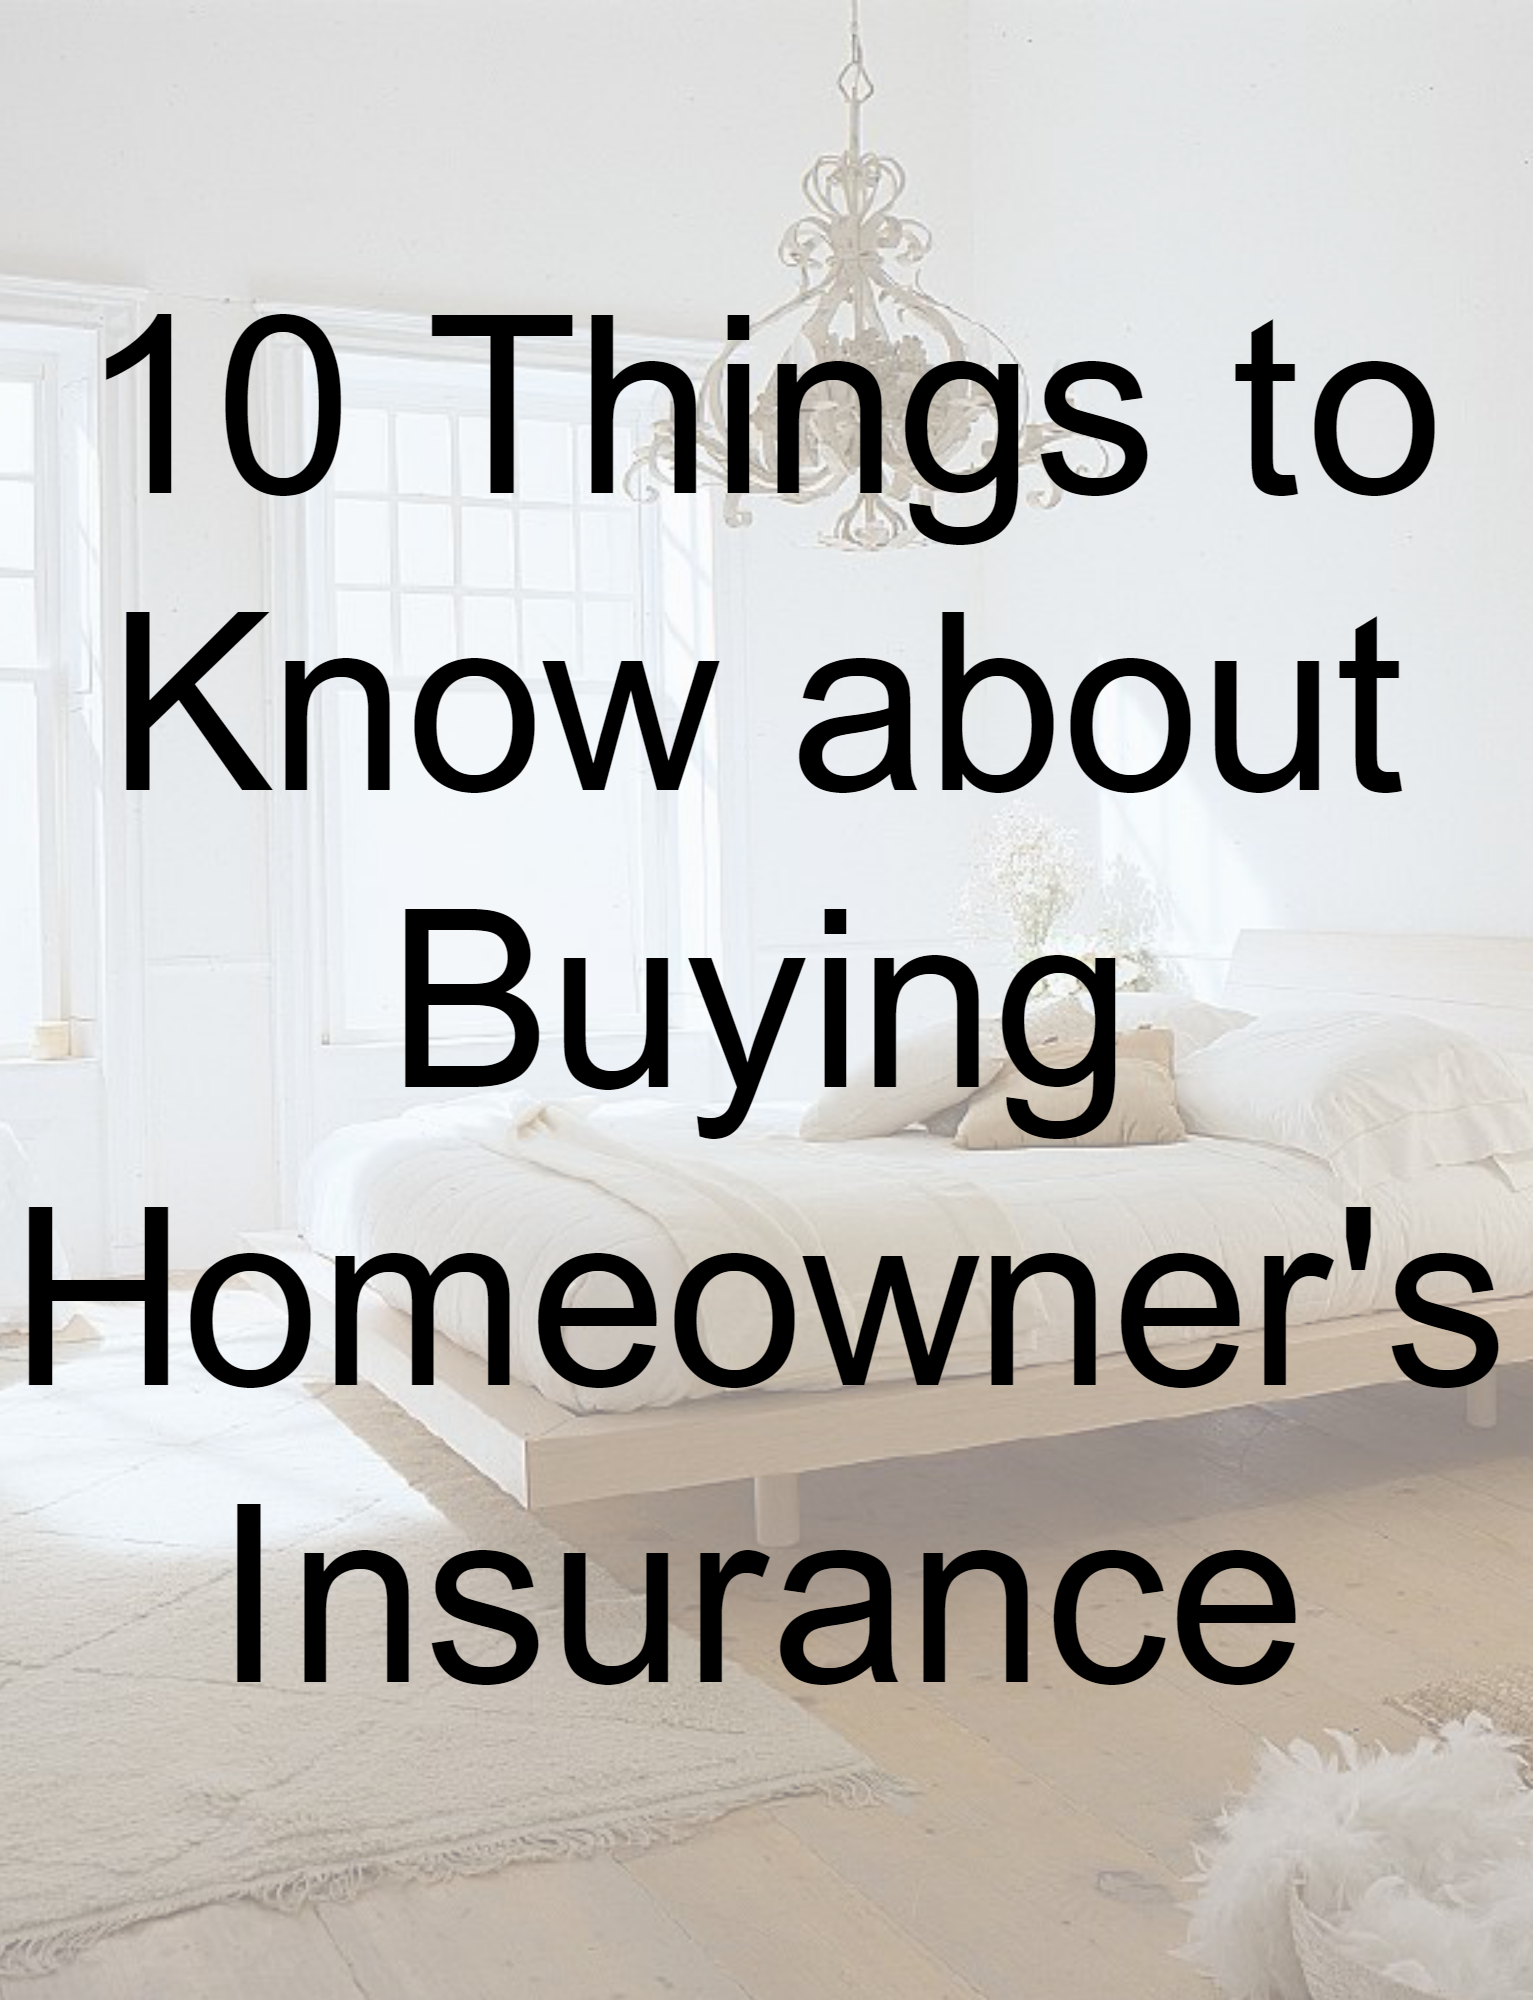 10 things to know about buyng homeowners insurance cover.png